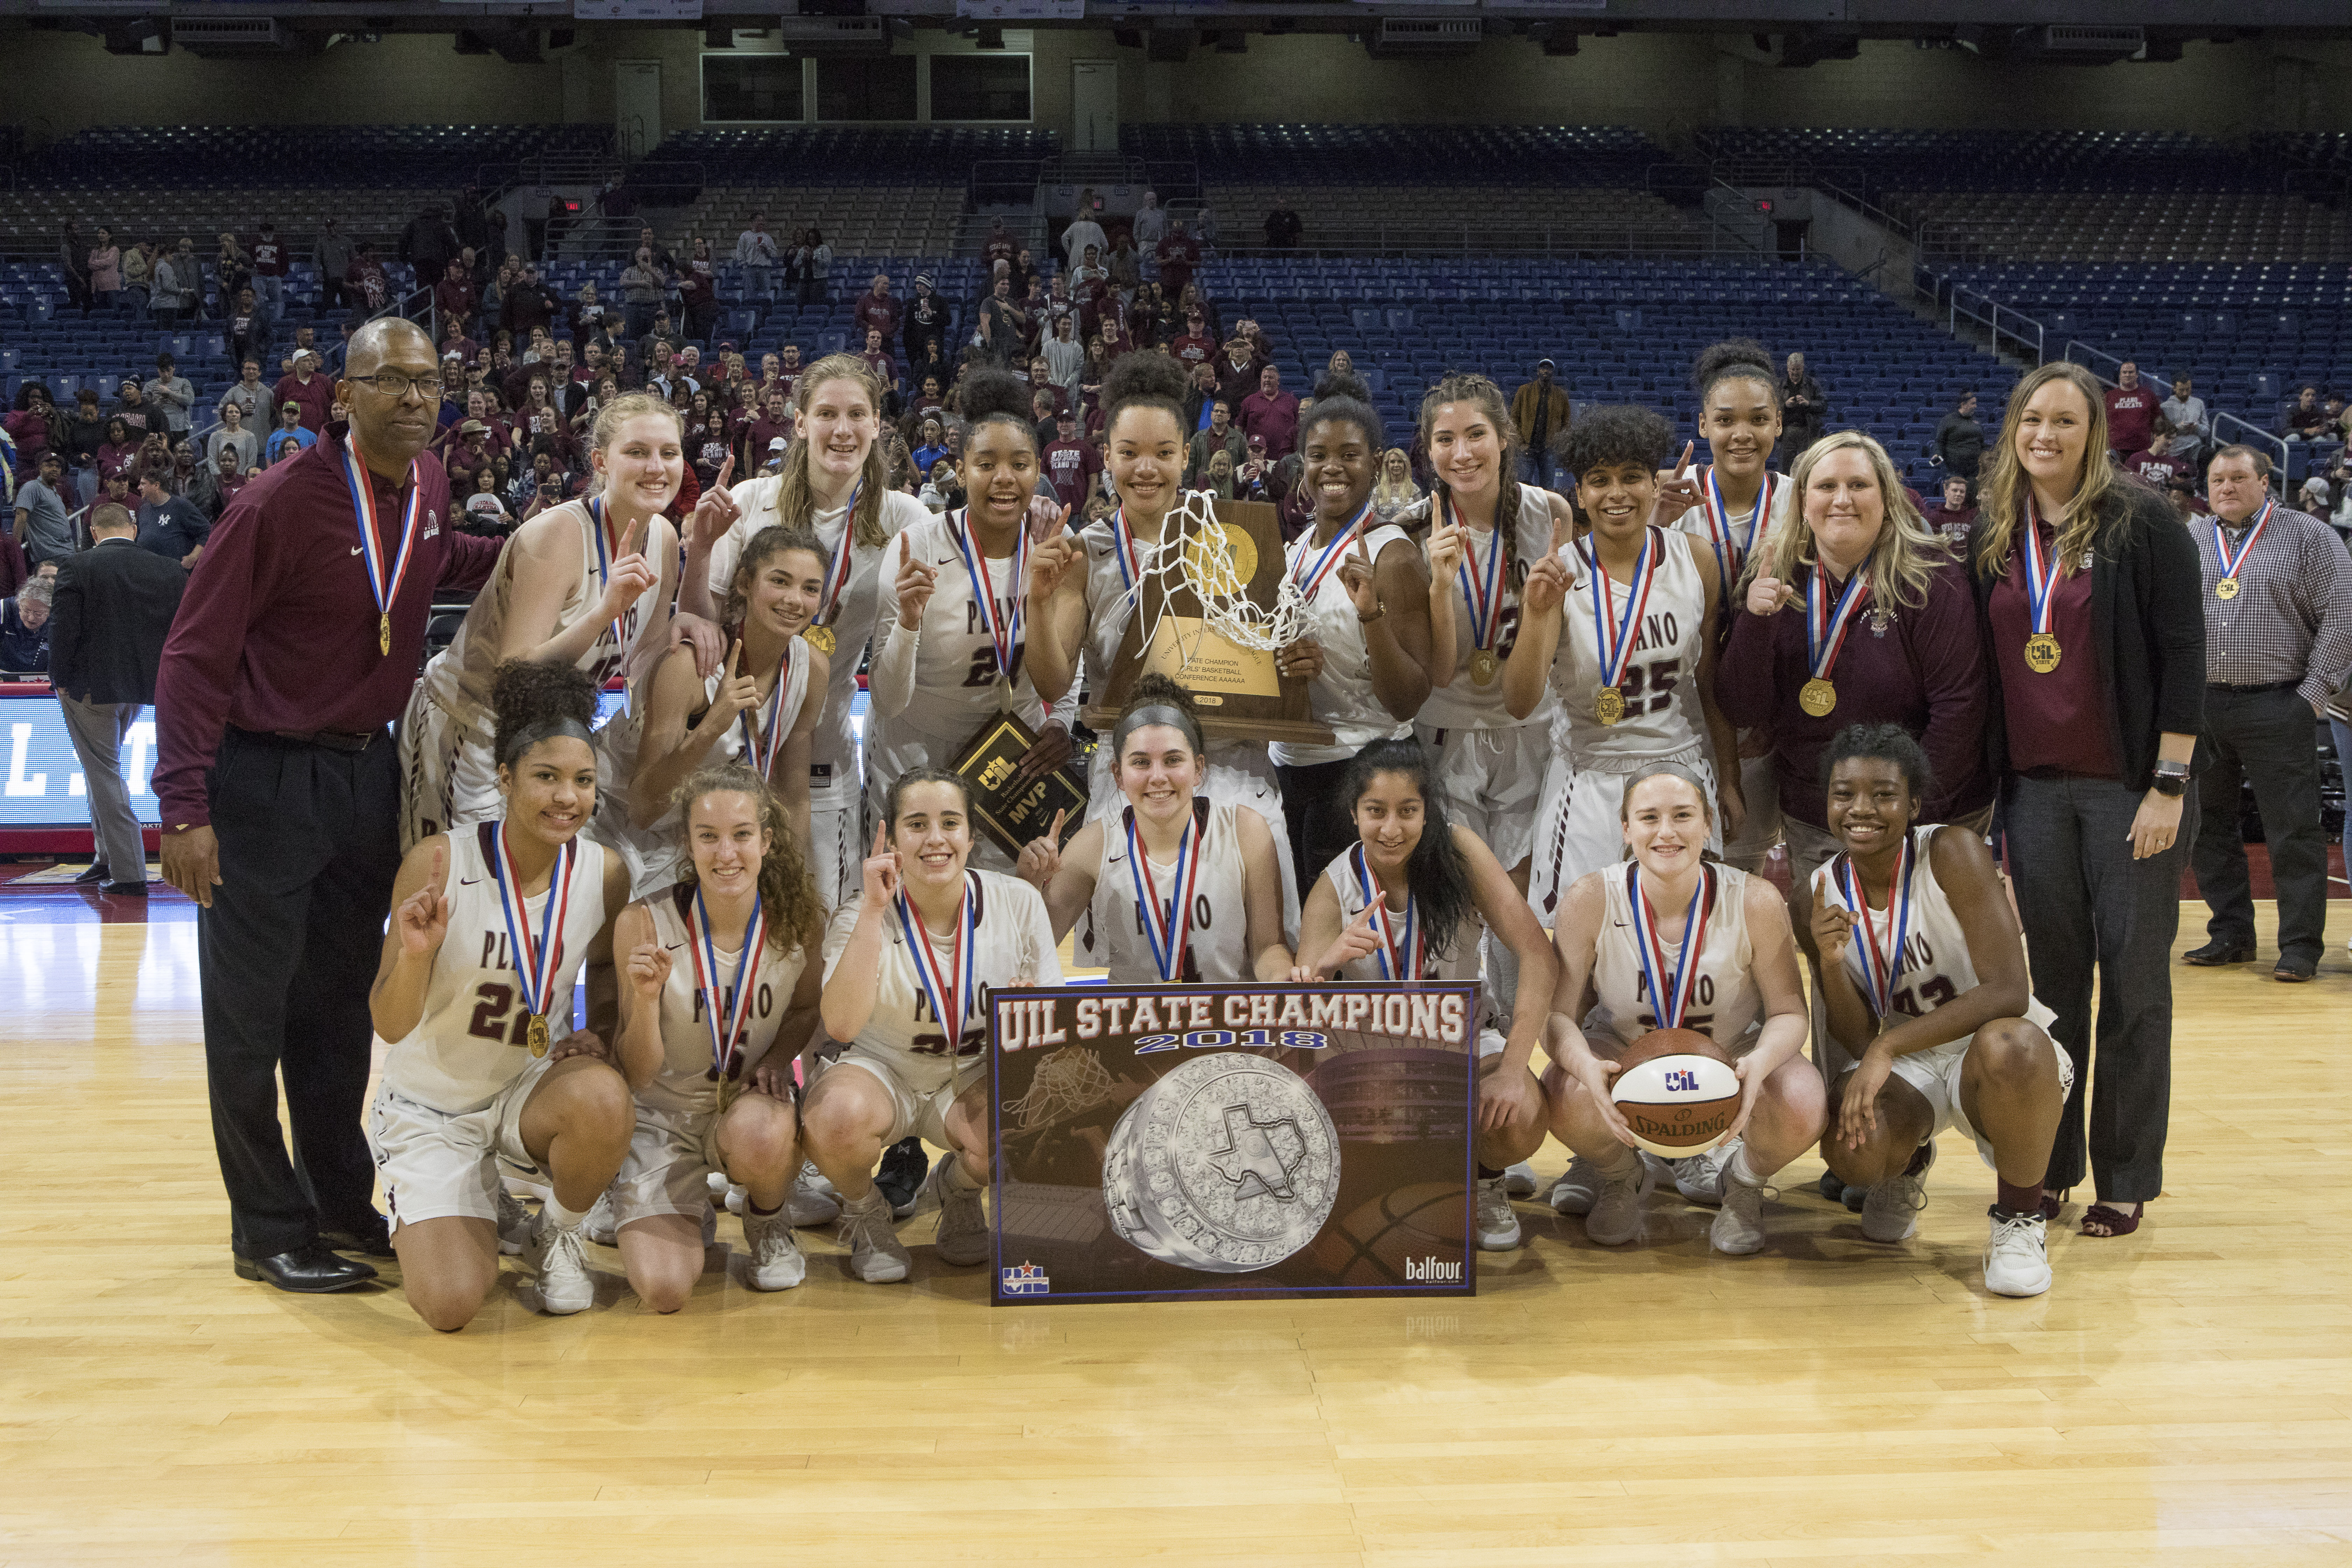 Lady Wildcats Basket Ball UIL State Champions team photo with trophy.